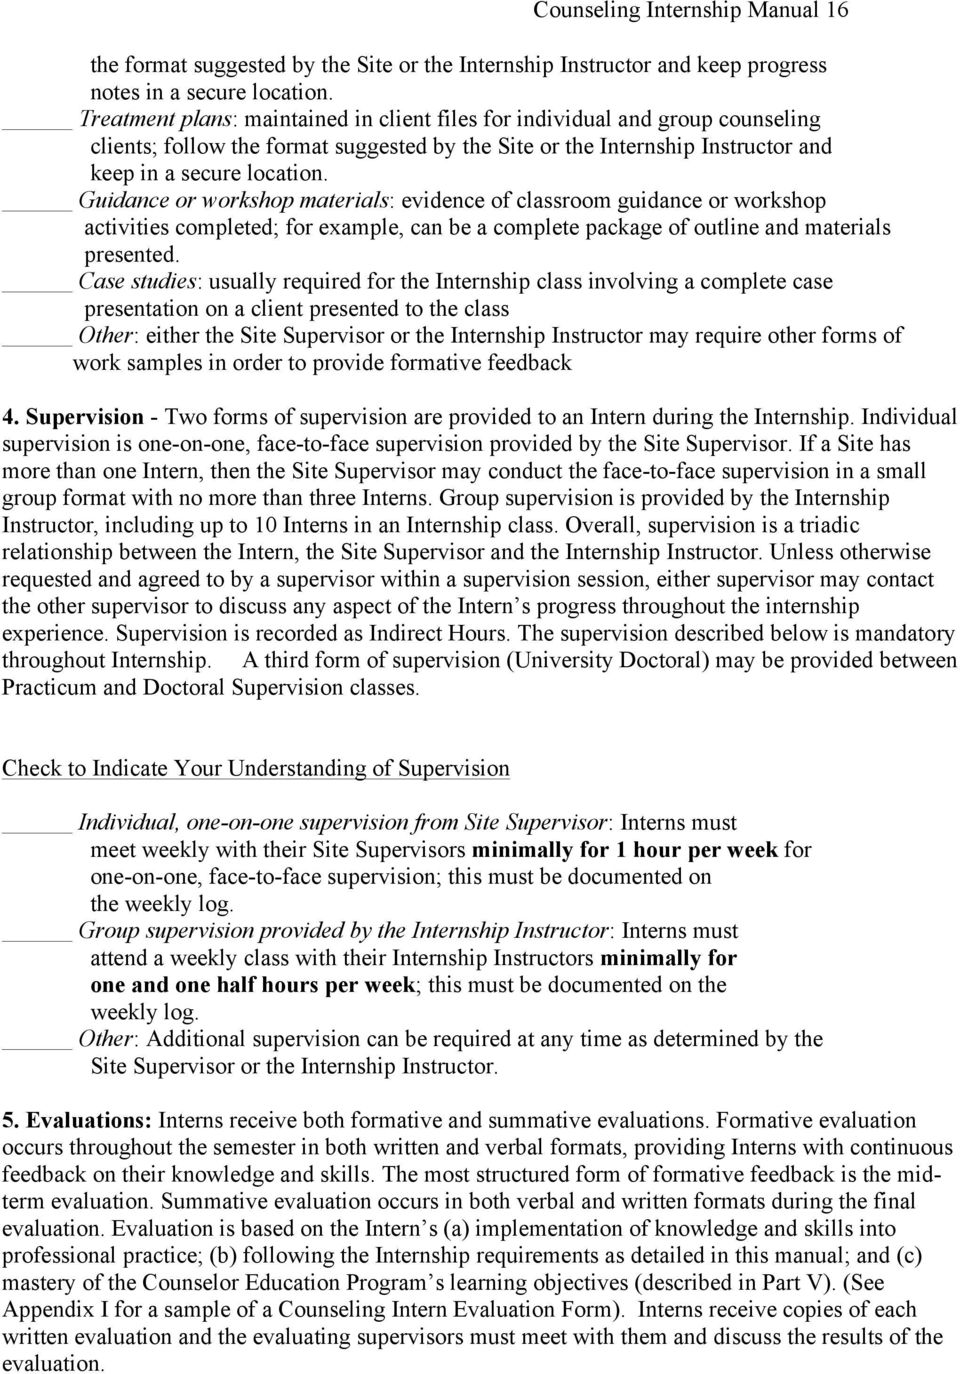 Guidance or workshop materials: evidence of classroom guidance or workshop activities completed; for example, can be a complete package of outline and materials presented.